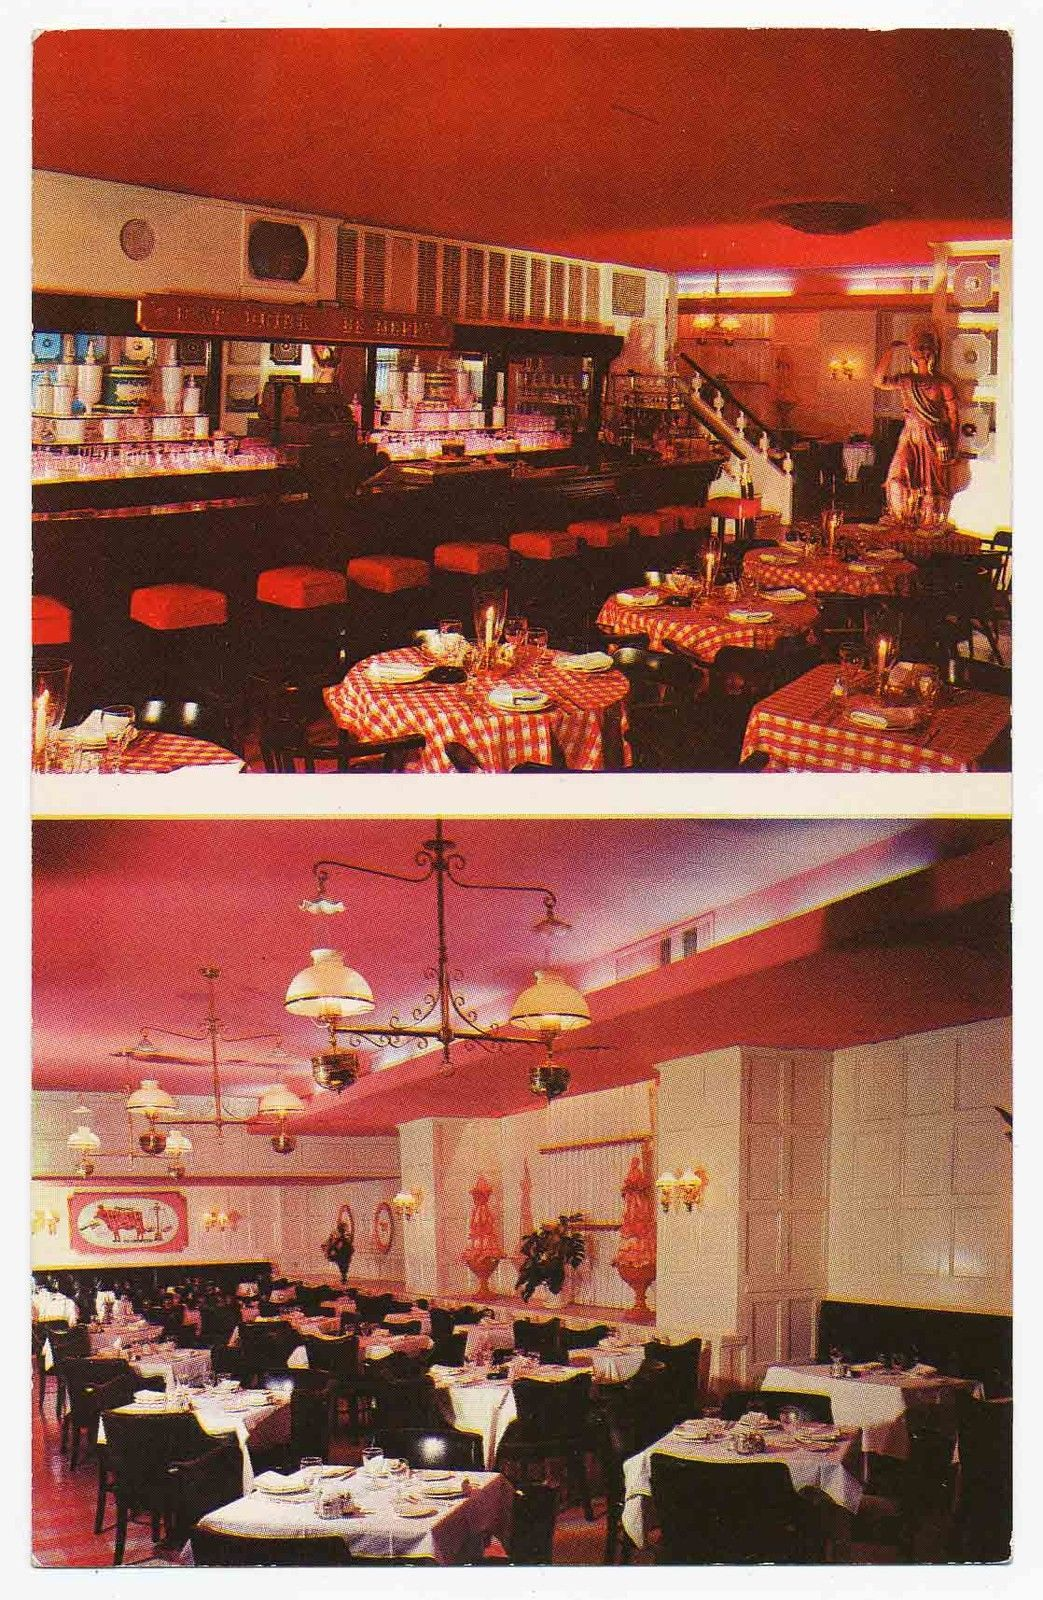 Hutton S Steak House Restaurant Lexington Ave And 47th St New York City York Restaurants American Photo Black Panther Party